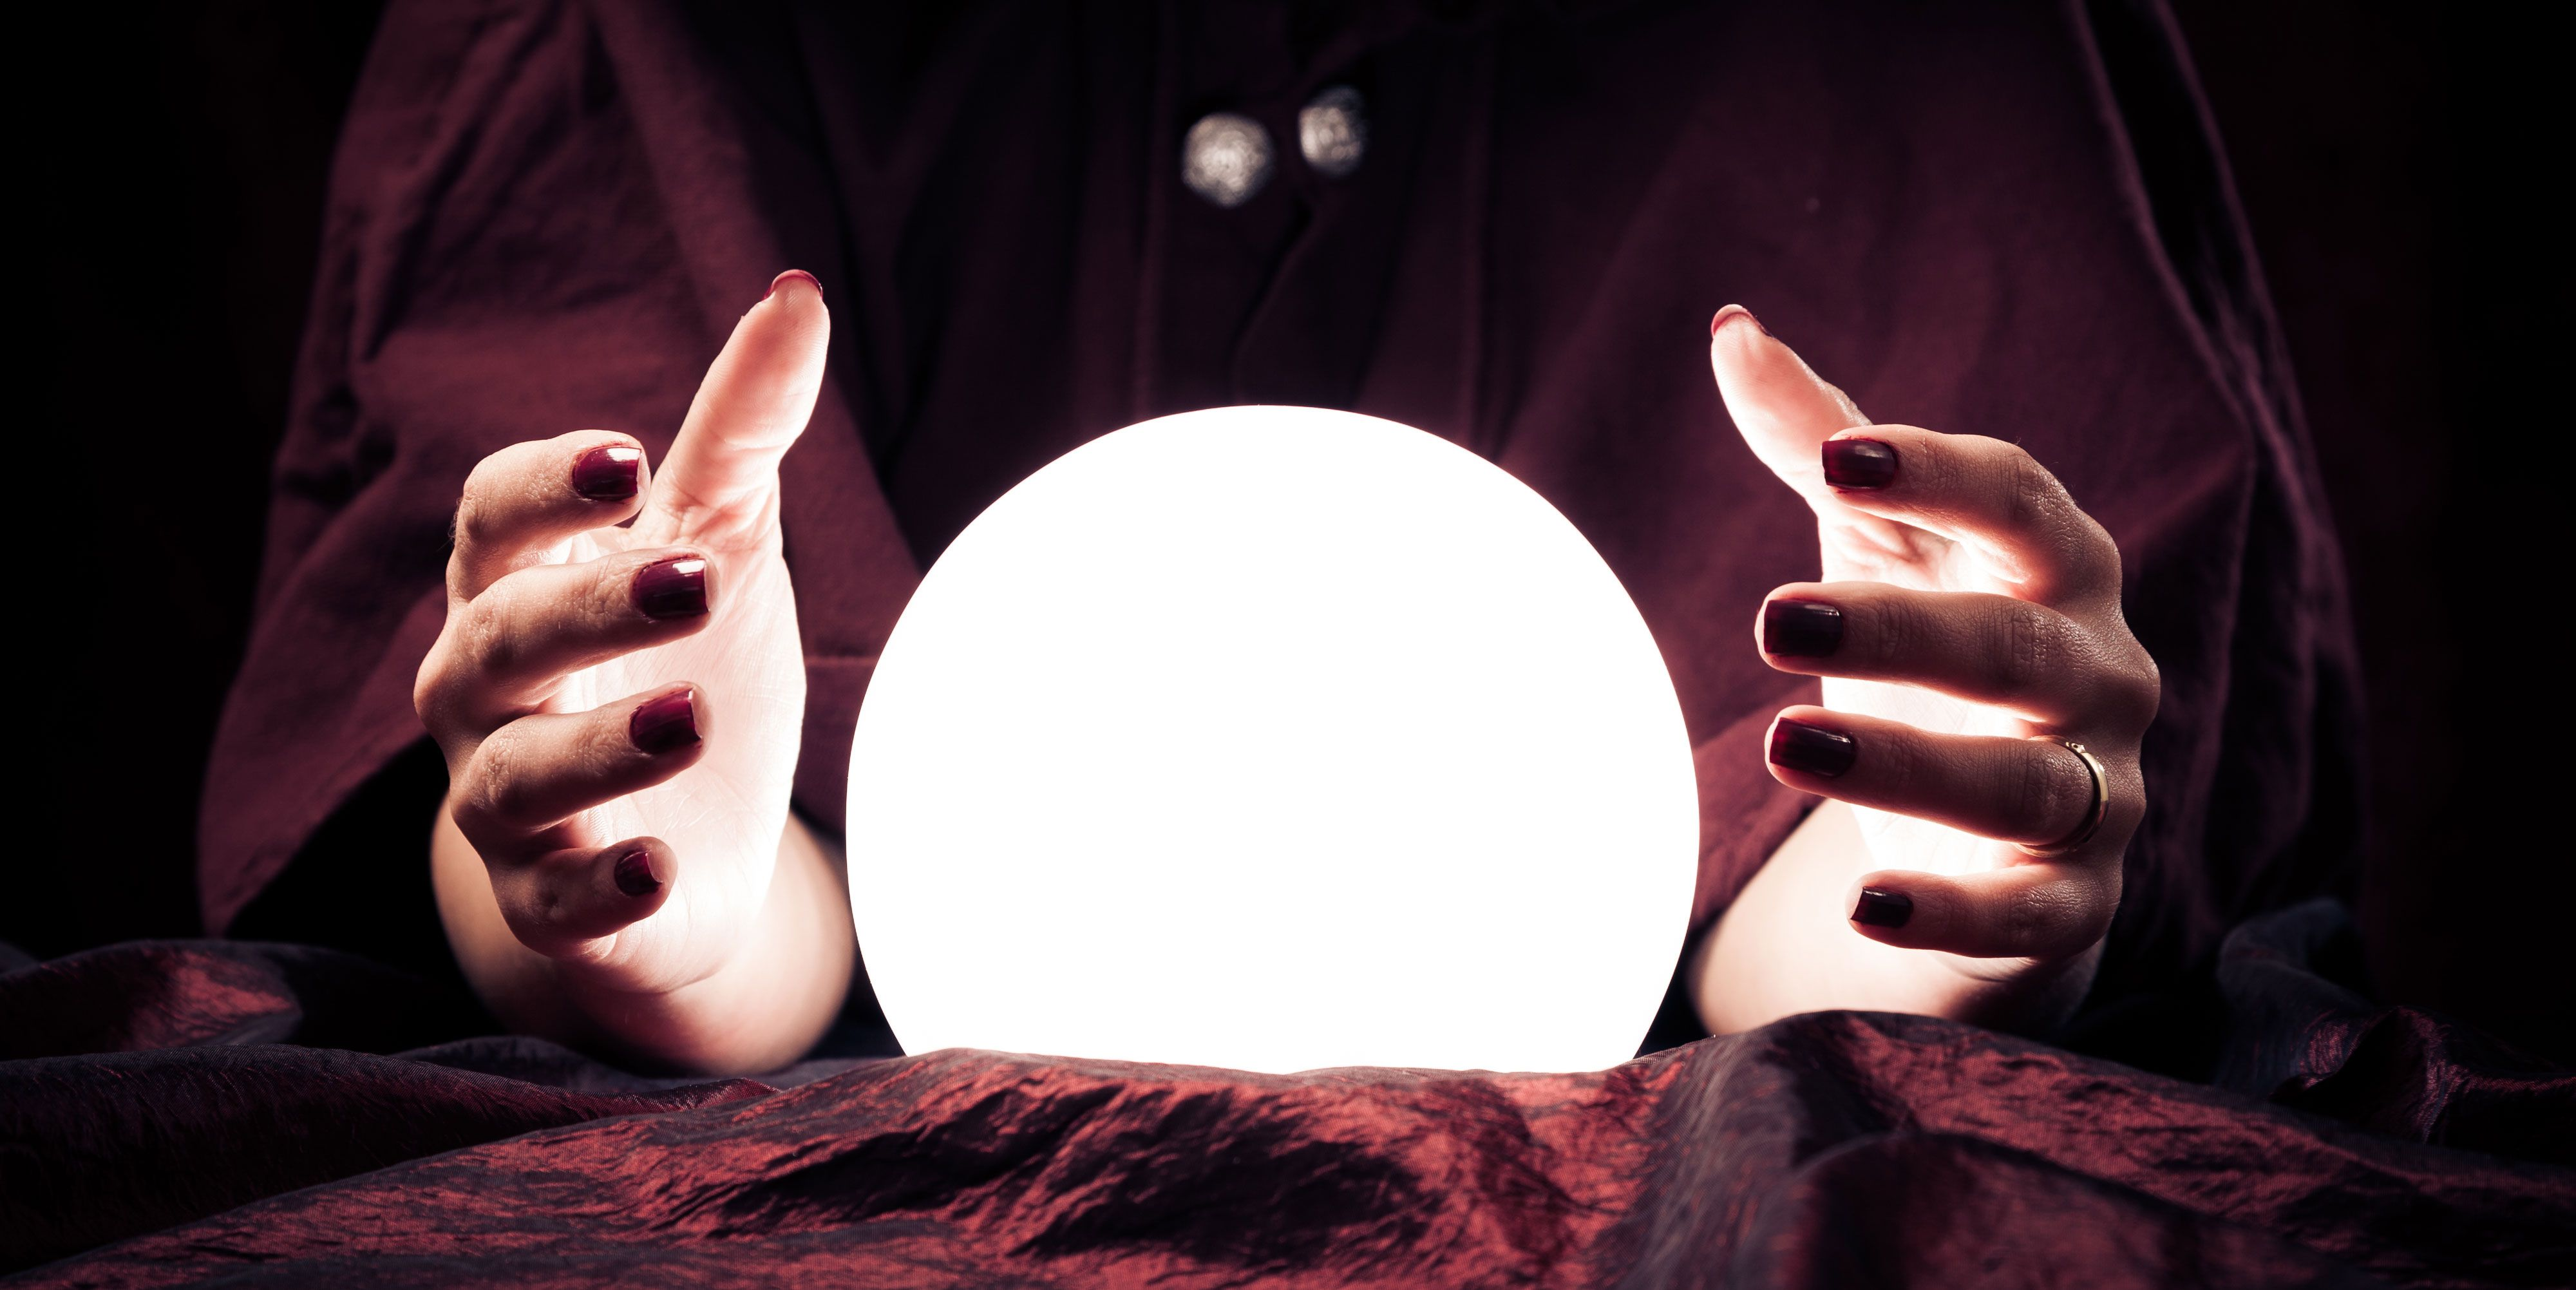 I Asked a Psychic for Marriage Advice